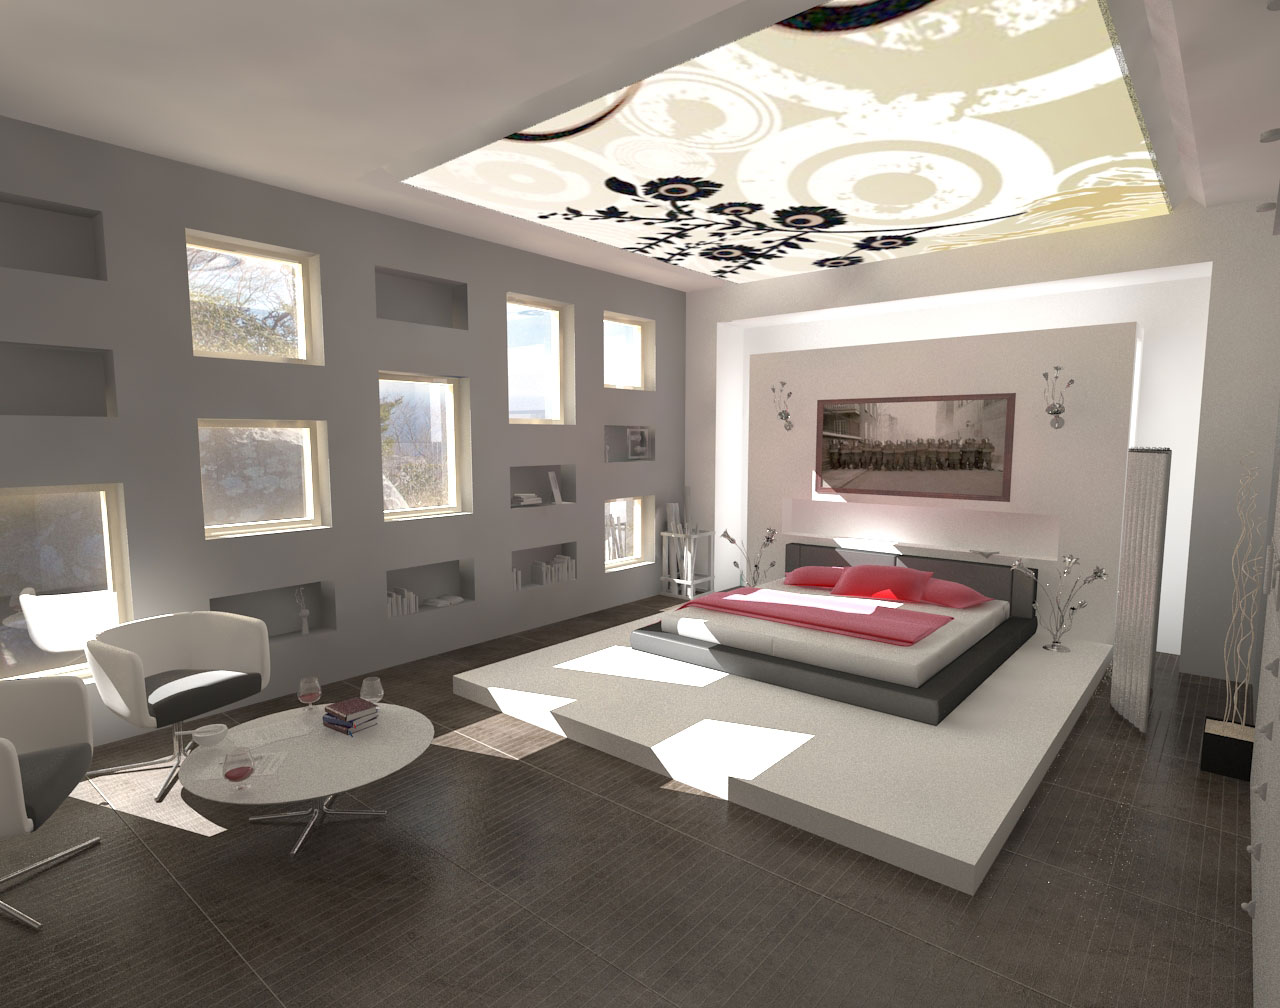 1 Bedroom Interior Design Ideas luxurious bedroom designs ideas interior design. bedroom interior